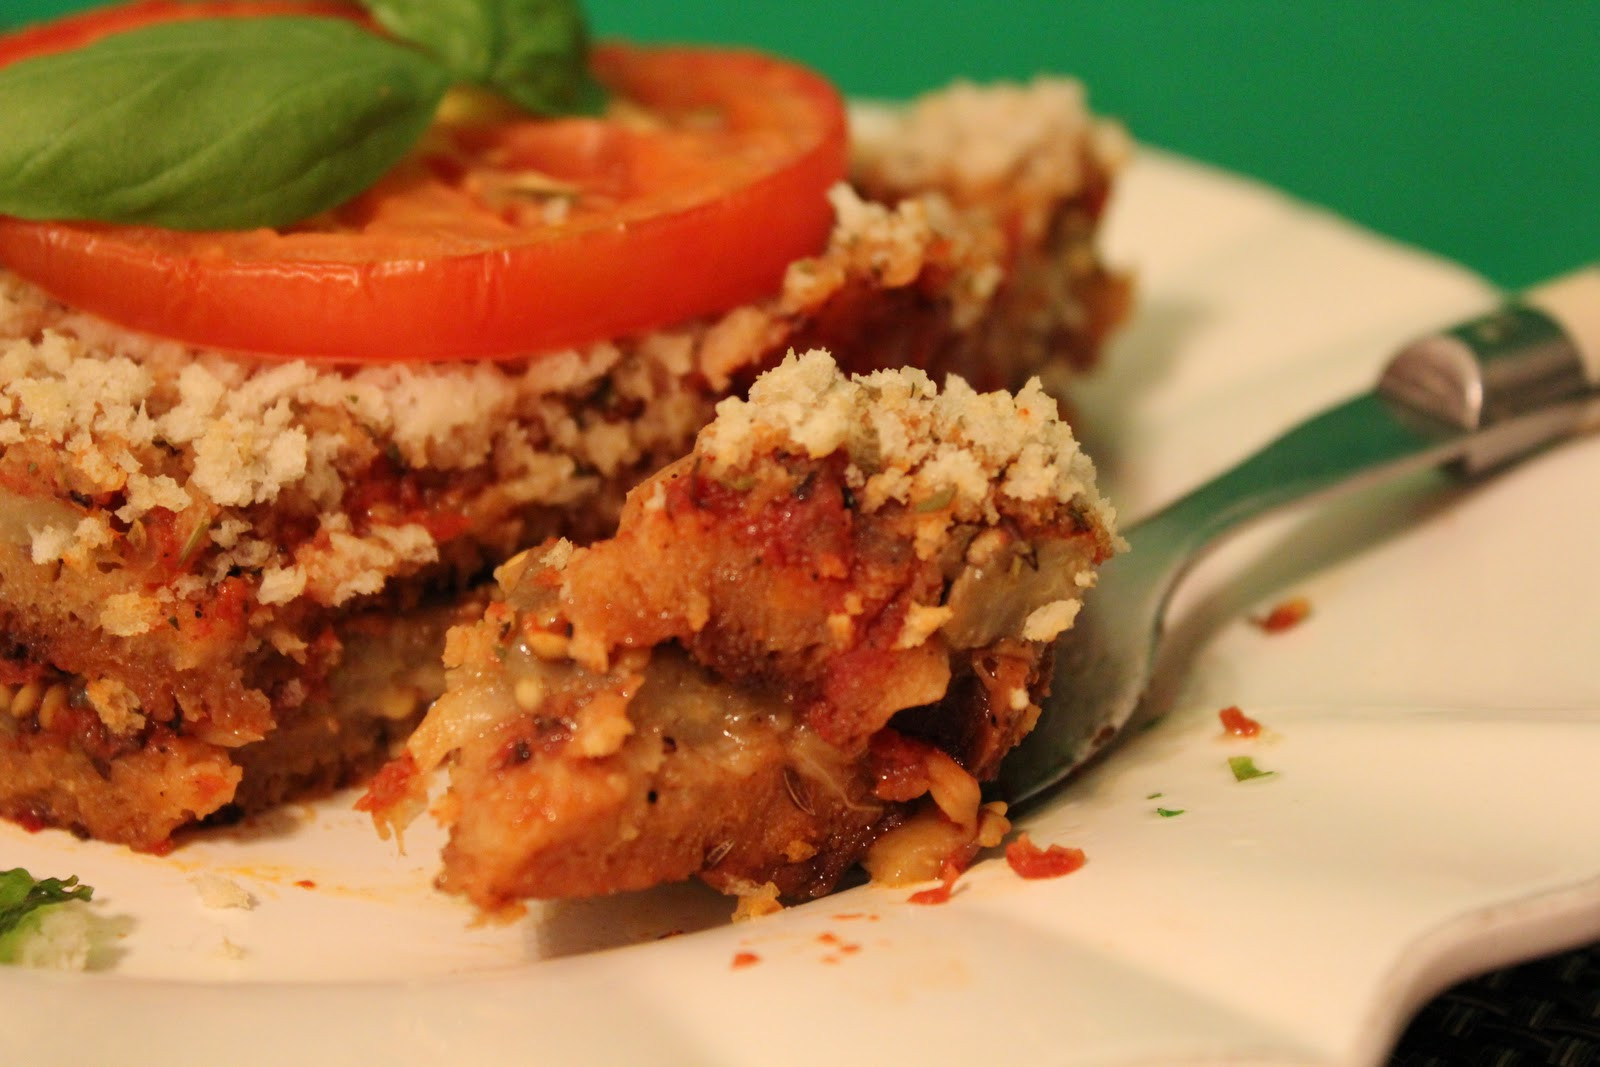 Vegetarian Eggplant Lasagna Without Noodles  The Happy Go Lucky Vegan Rustic Garlic Bread & Eggplant